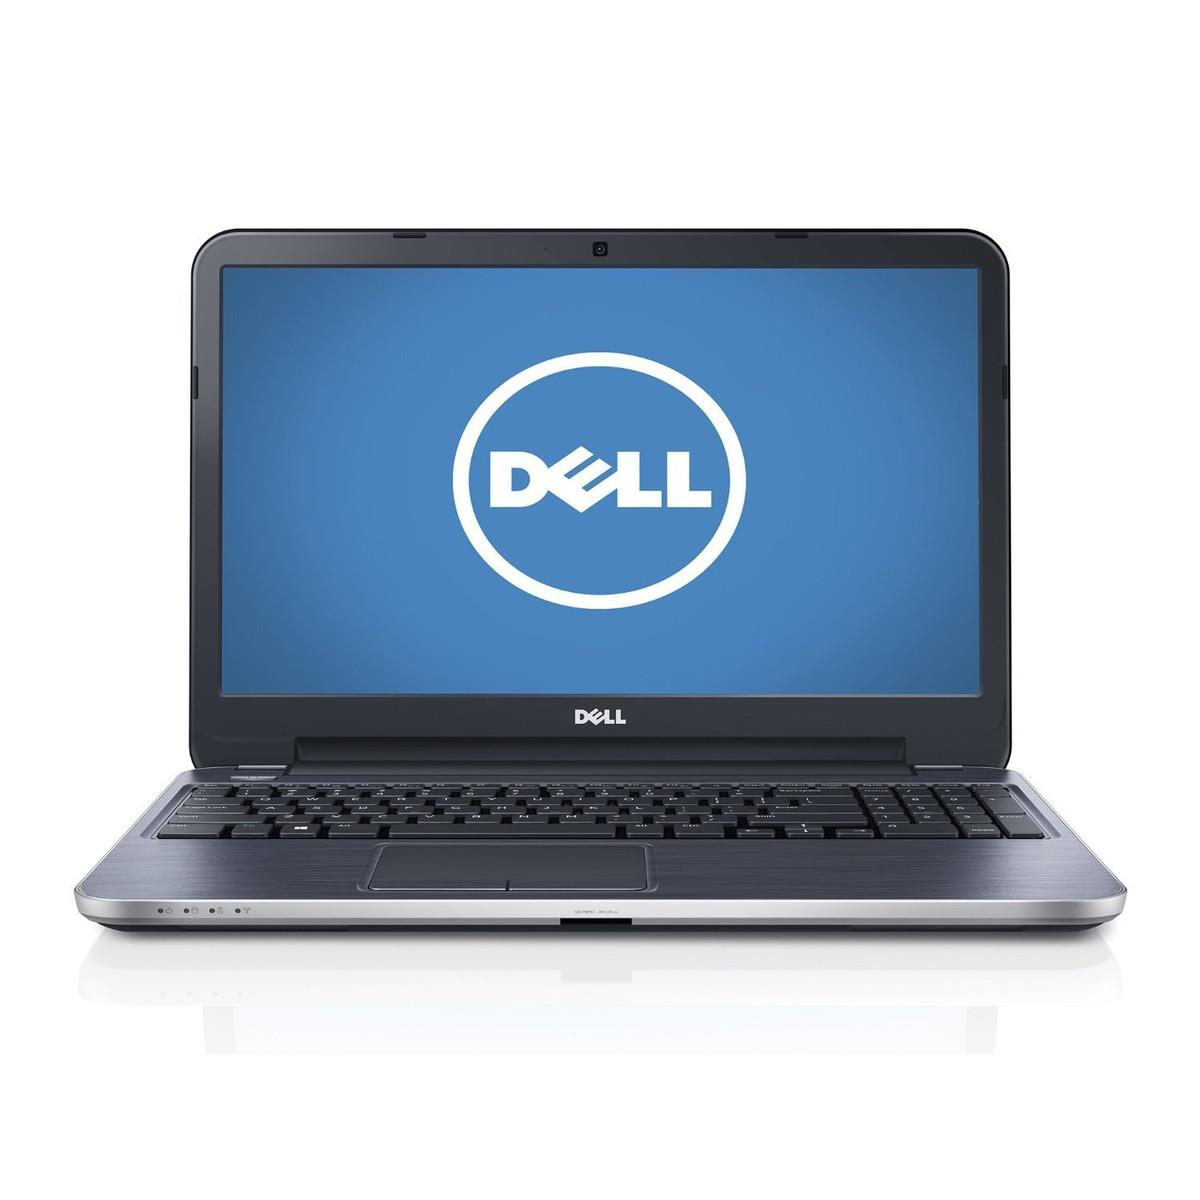 Dell Inspiron 15 3537 Laptop Image